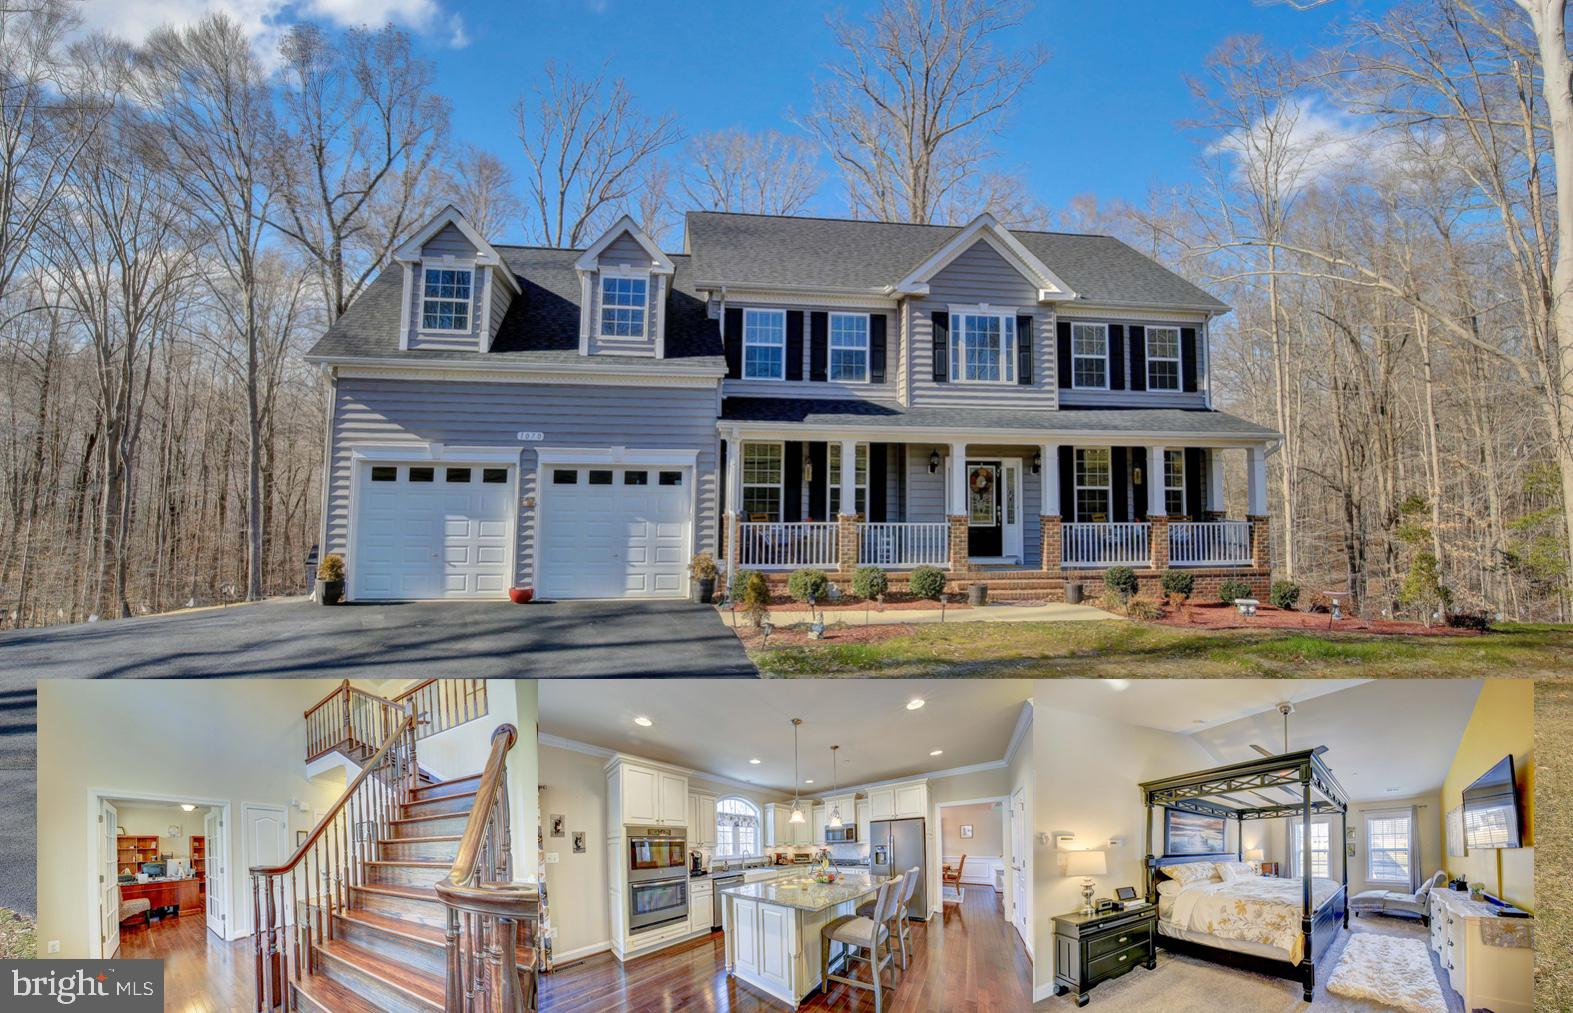 1070 CLAYPIPE DRIVE, HUNTINGTOWN, MD 20639